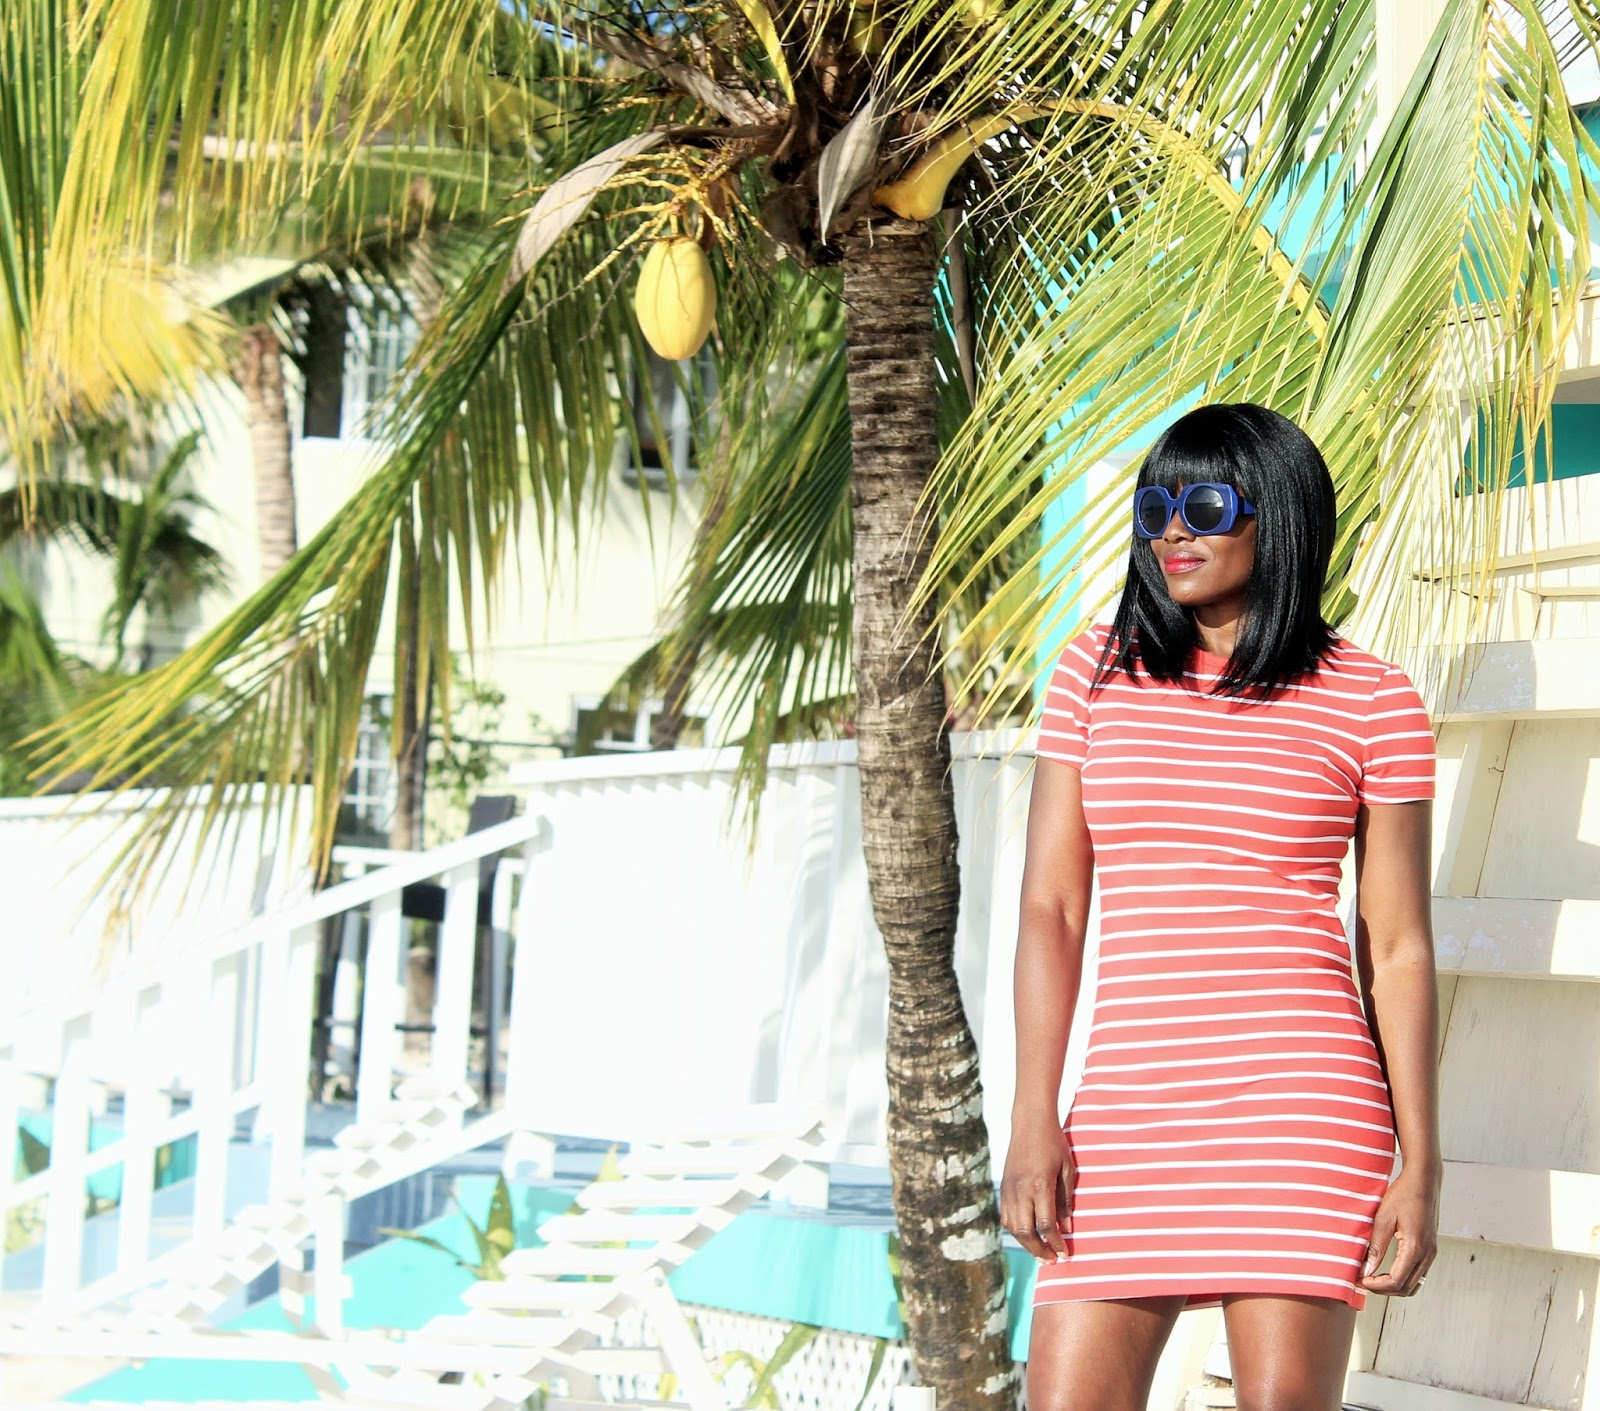 THE OLD NAVY STRIPED DRESS THAT TOOK ME BY SURPRISE